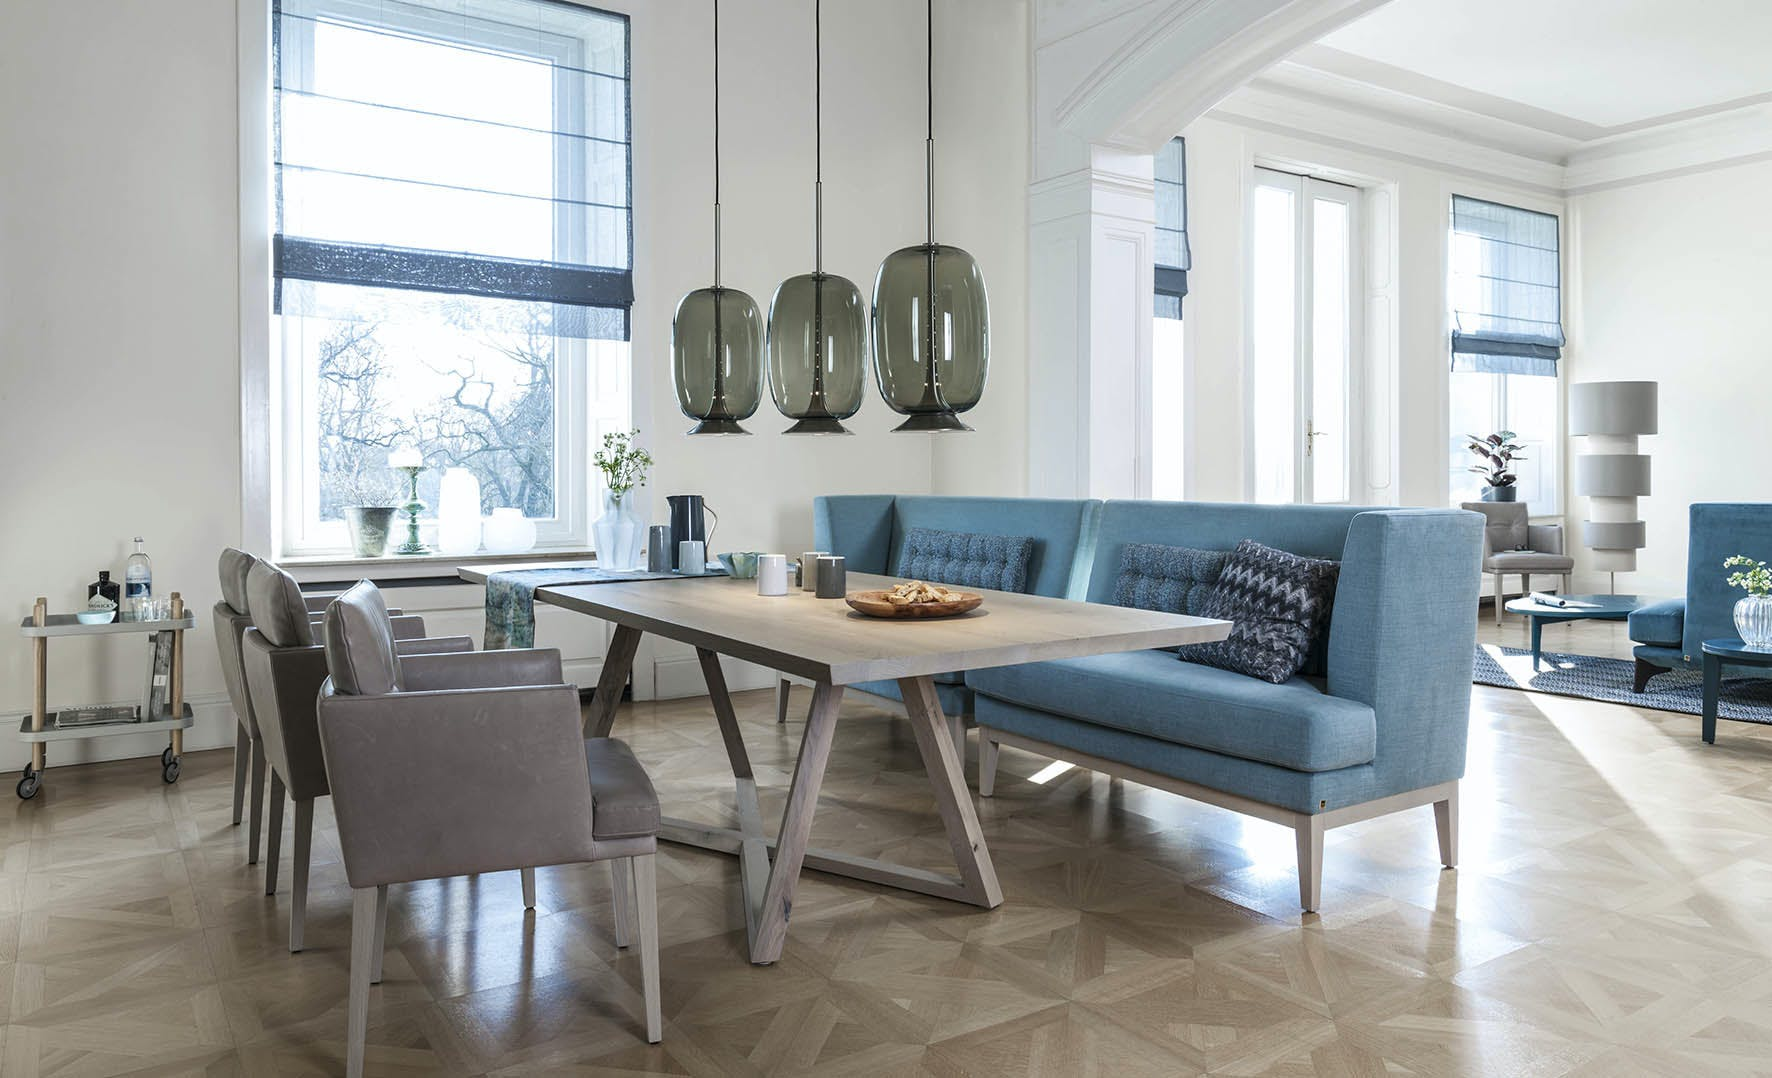 Jab Anstoetz Polo Dining Table Insitu Haute Living